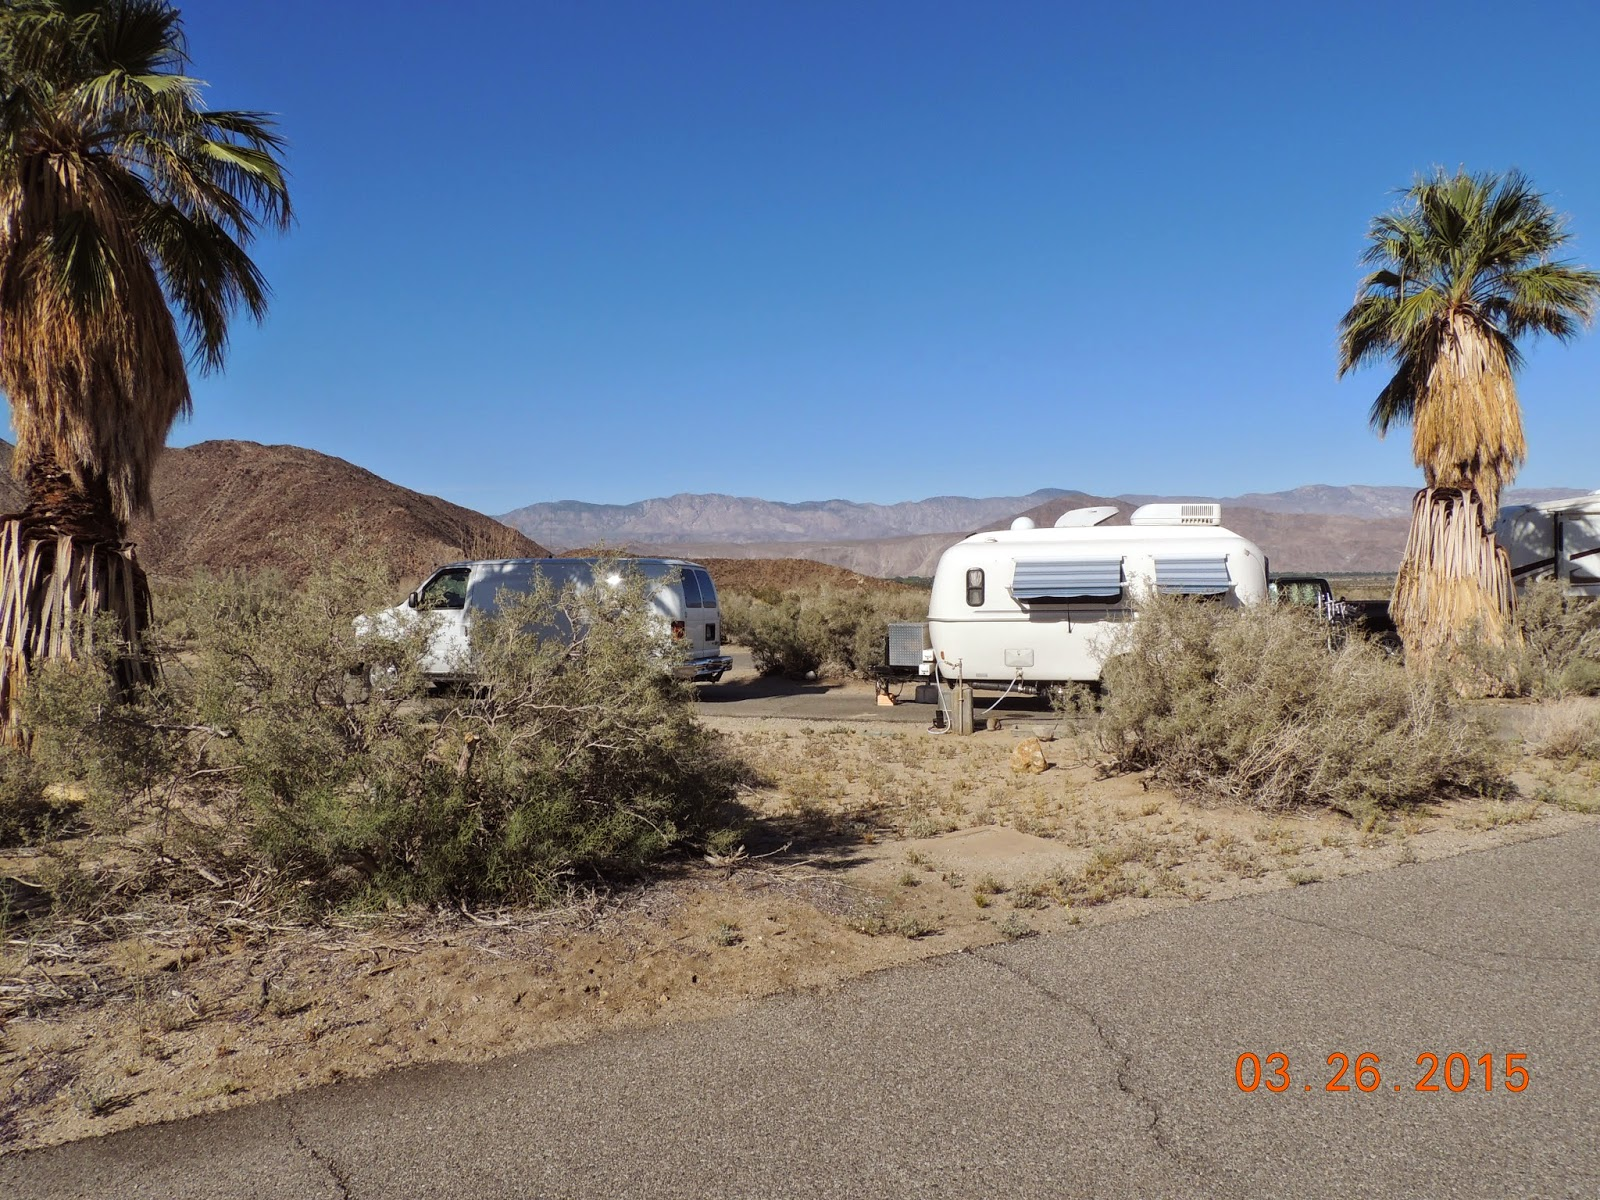 de anza mobile home park with Anza Borrego Desert Sp 032615 Borrego on 8871047948 together with 23005952 likewise 03 additionally Sd Me Deanza Plans 20160927 Story furthermore Anza Borrego Desert Sp 032615 Borrego.